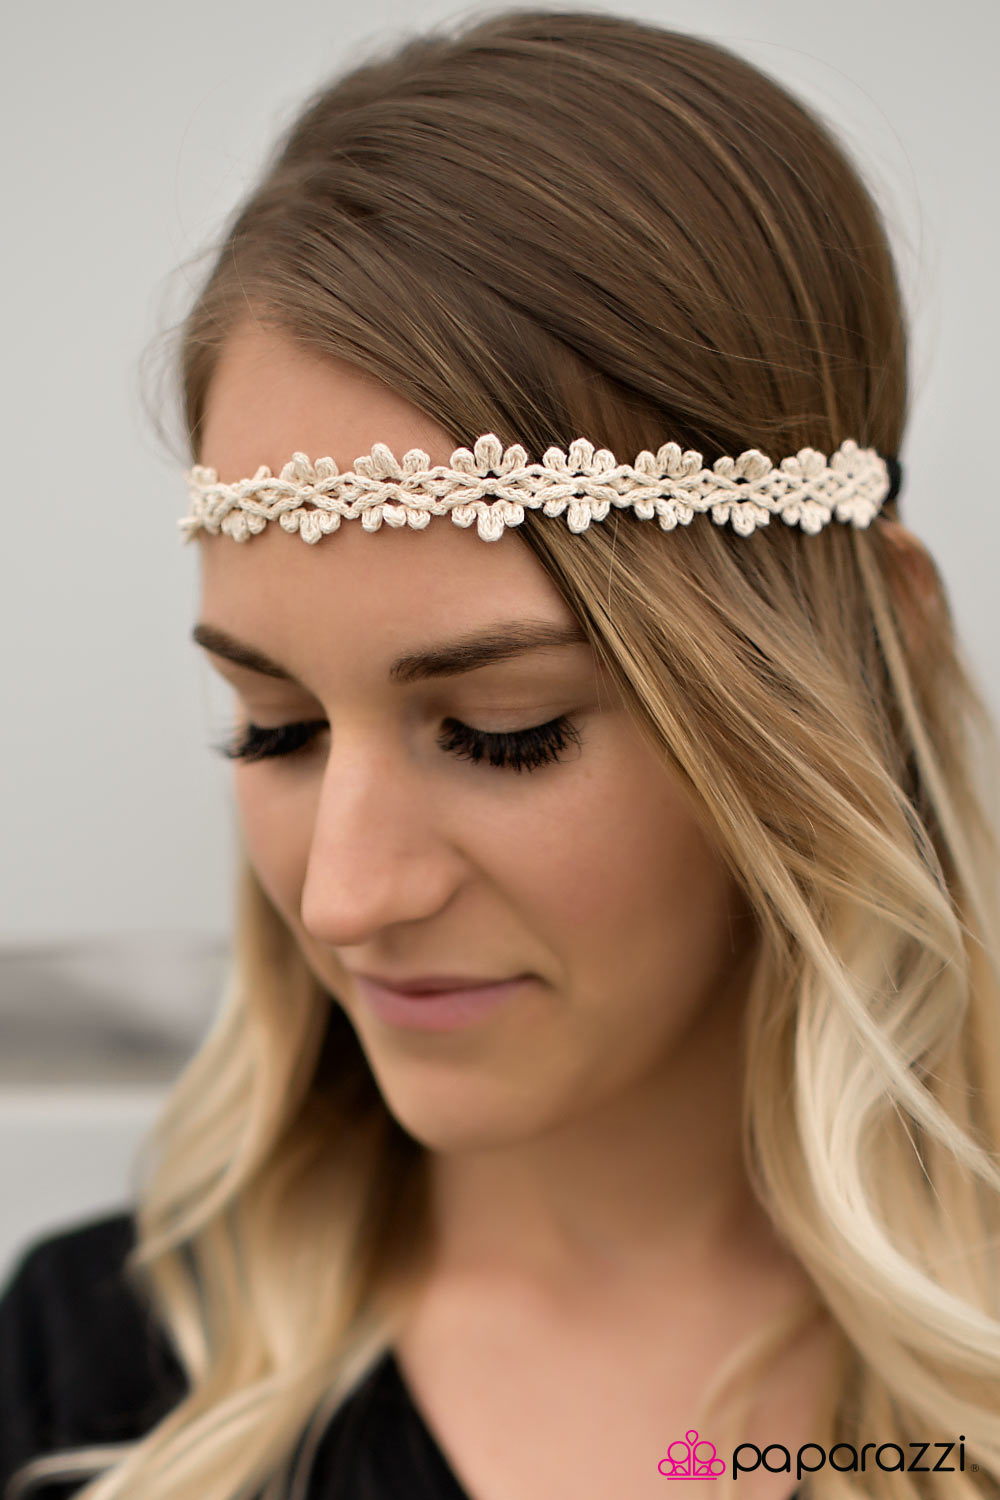 Coachella Couture - Paparazzi headband